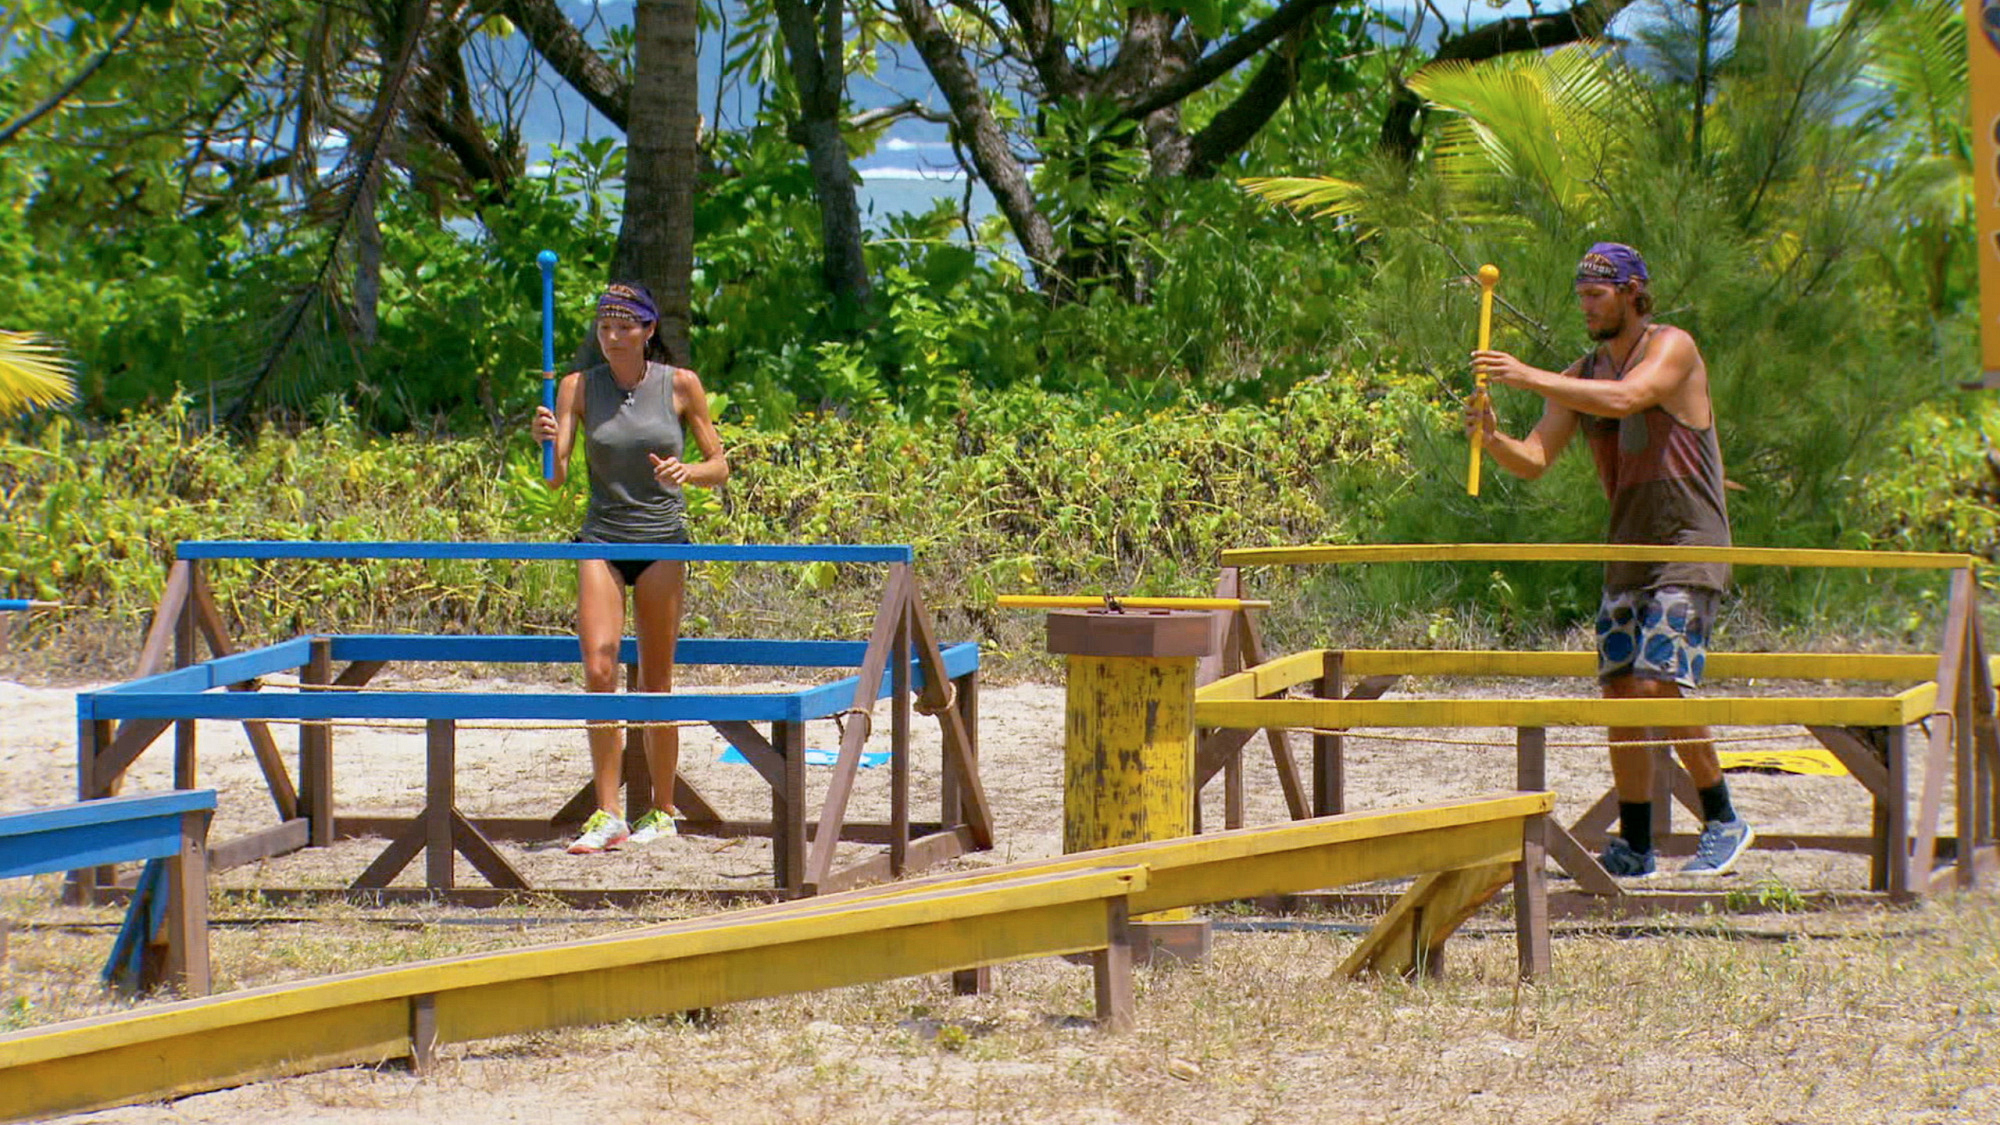 Monica and Hayden compete in Season 27 Episode 12